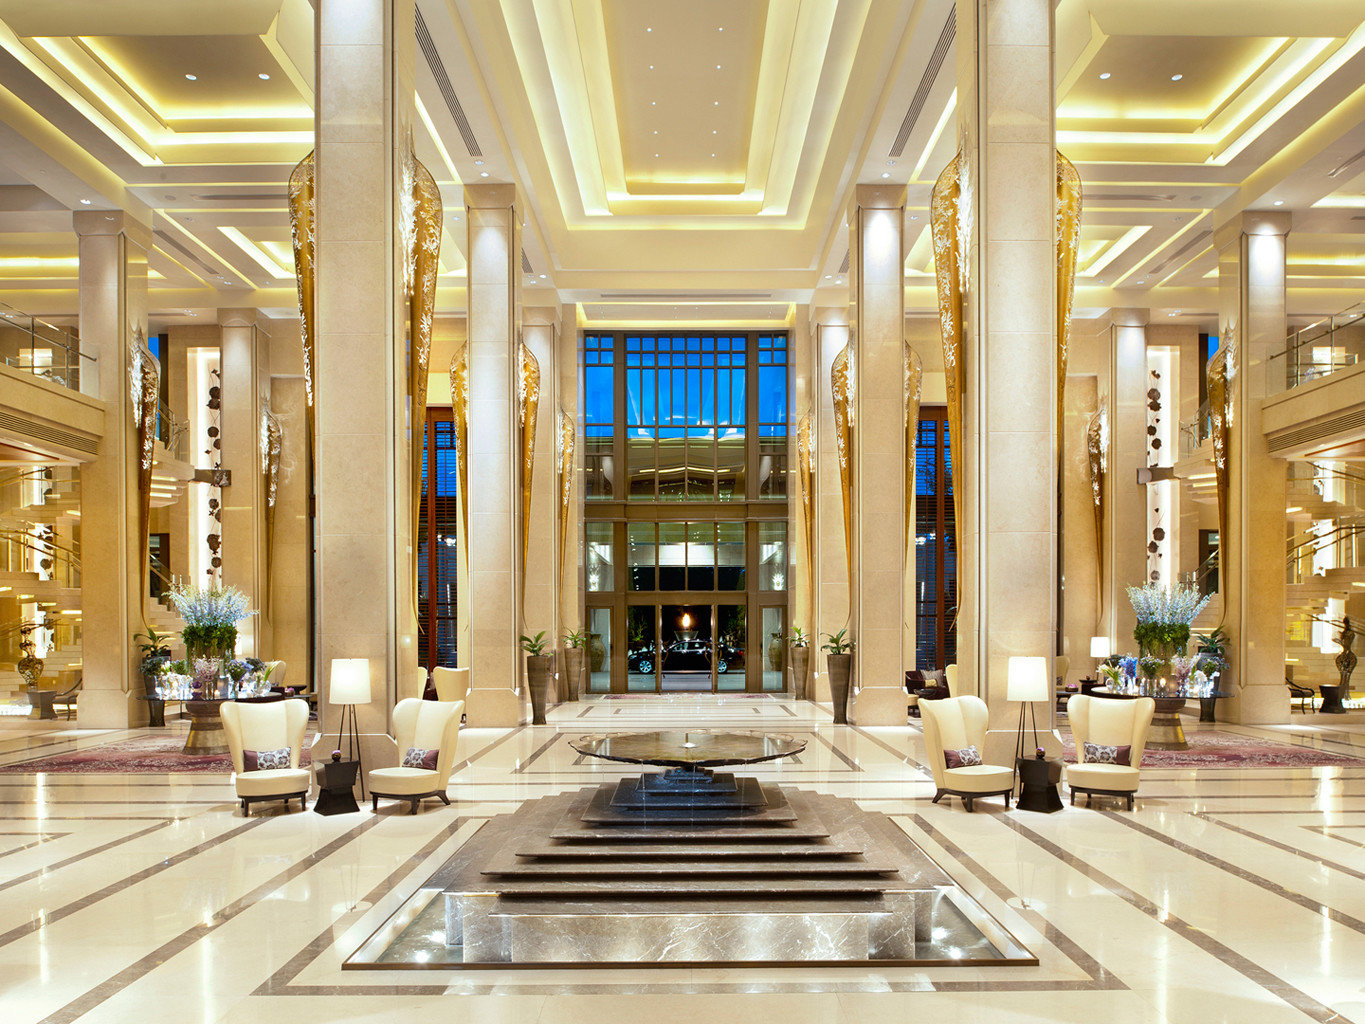 Hotels indoor Lobby shopping mall building ceiling estate interior design daylighting retail counter ballroom convention center hall plaza palace function hall